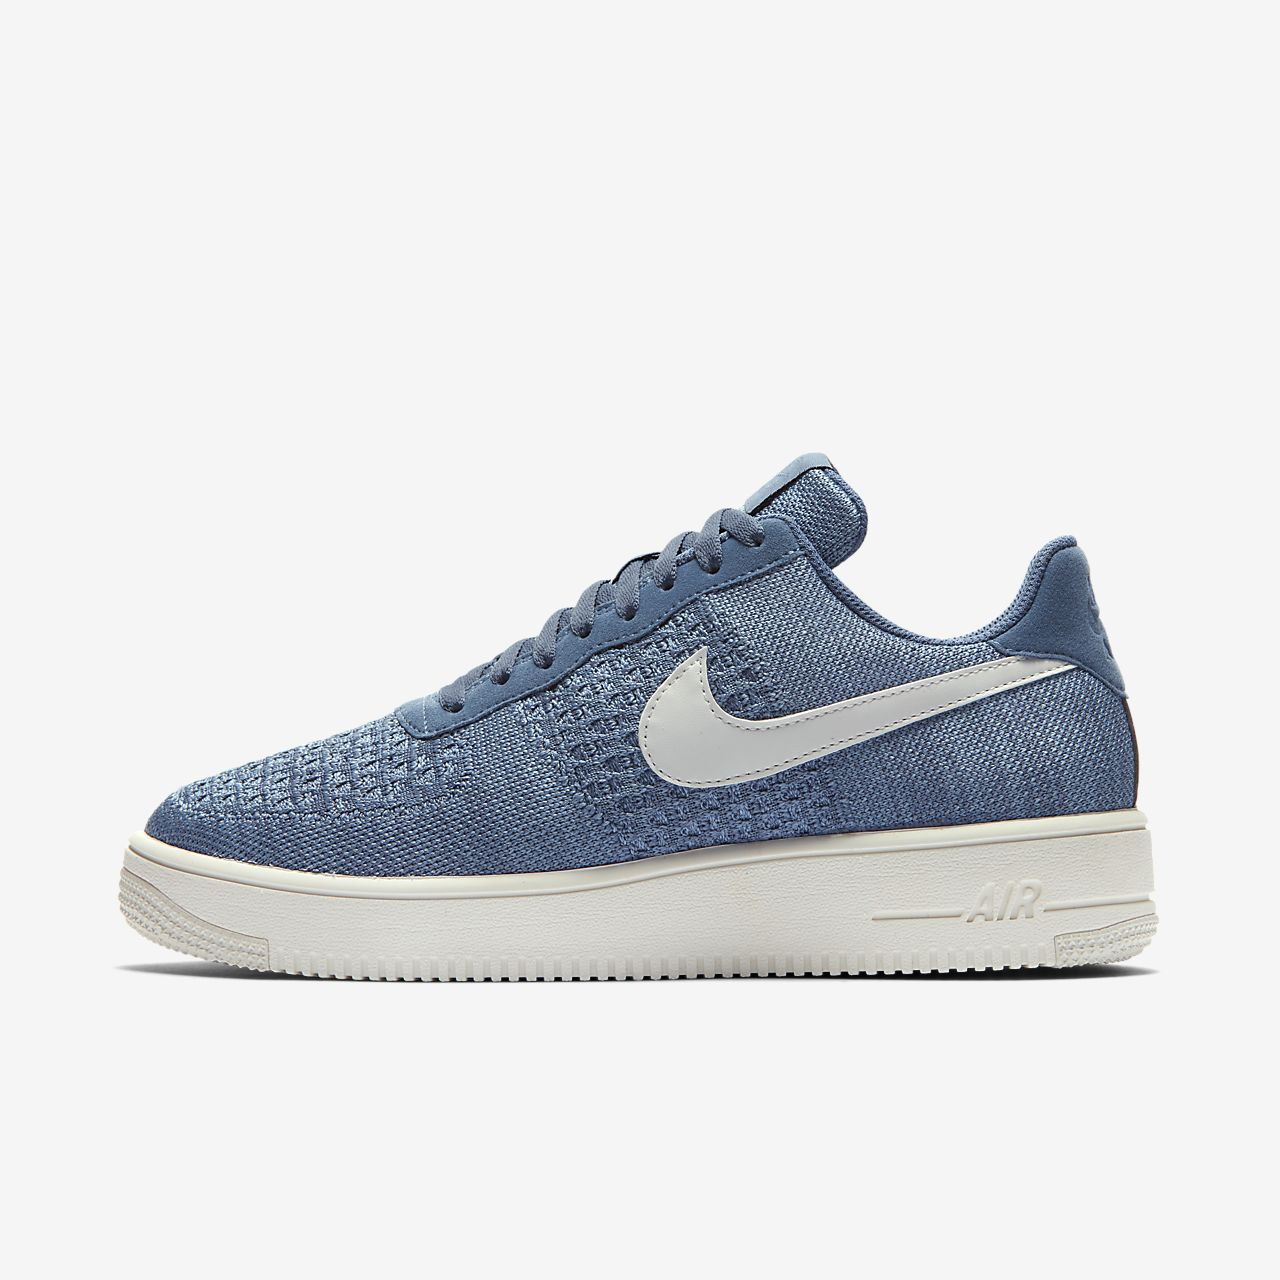 new product 84450 ebb5b Nike Air Force 1 Flyknit 2.0 Men's Shoe